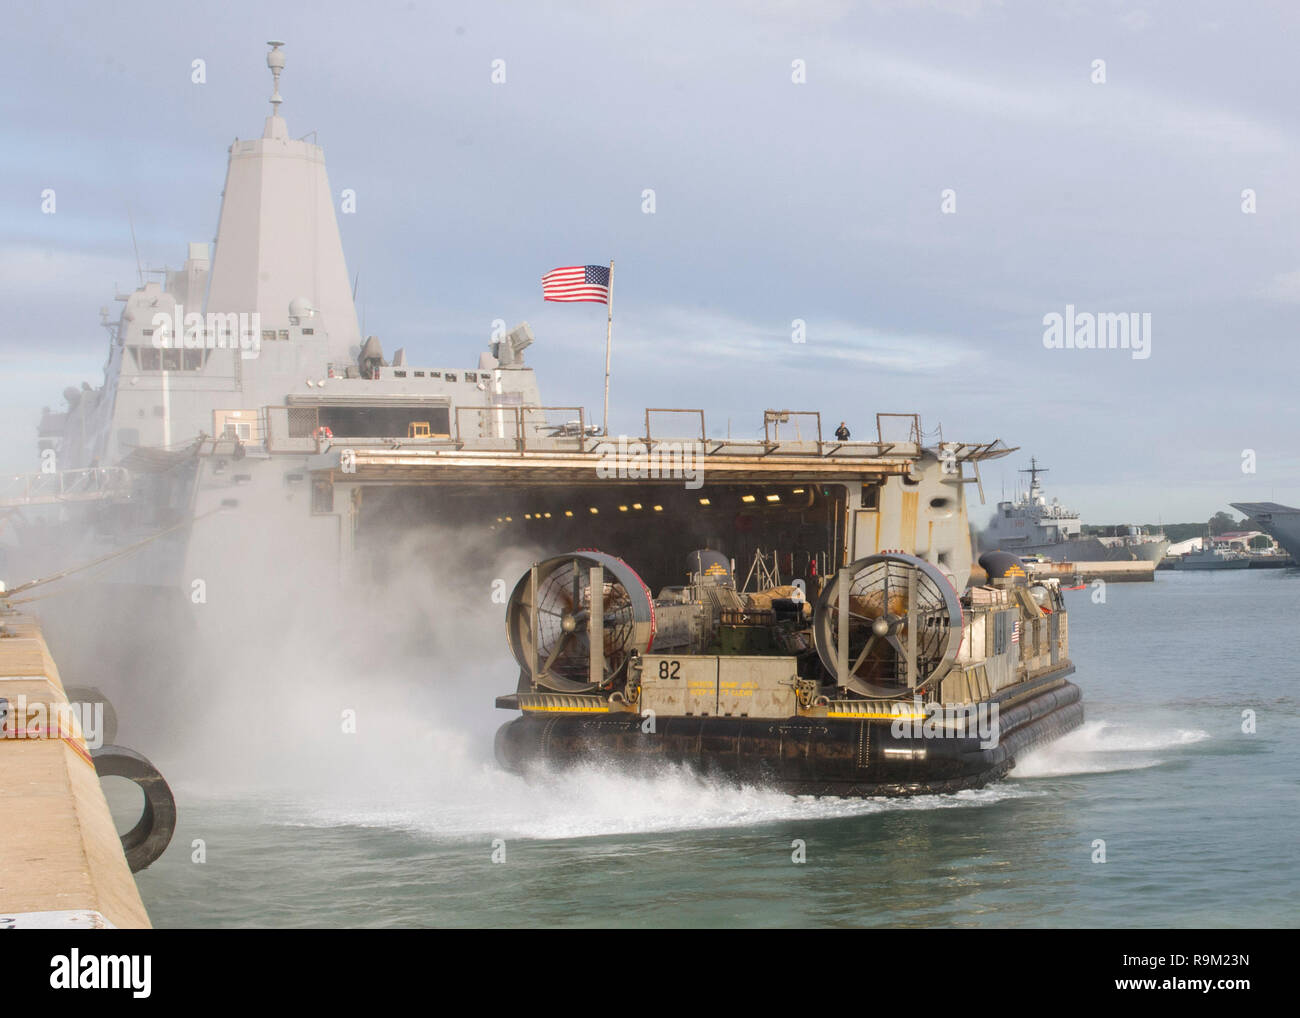 181124-N-PH222-1187 ROTA, SPAIN (Nov. 24, 2018) Landing Craft, Air Cushion (LCAC) 82, attached to Assault Craft Unit 5, disembarks the well deck of the San Antonio-class amphibious transport dock ship USS Anchorage (LPD 23) in Rota, Spain, Nov. 24, 2018. Anchorage and embarked 13th Marine Expeditionary Unit are deployed to the U.S. 6th Fleet area of operations as a crisis response force in support of regional partners as well as to promote U.S. national security interests in Europe and Africa. (U.S. Navy photo by Mass Communication Specialist 3rd Class Ryan M. Breeden/Released) - Stock Image